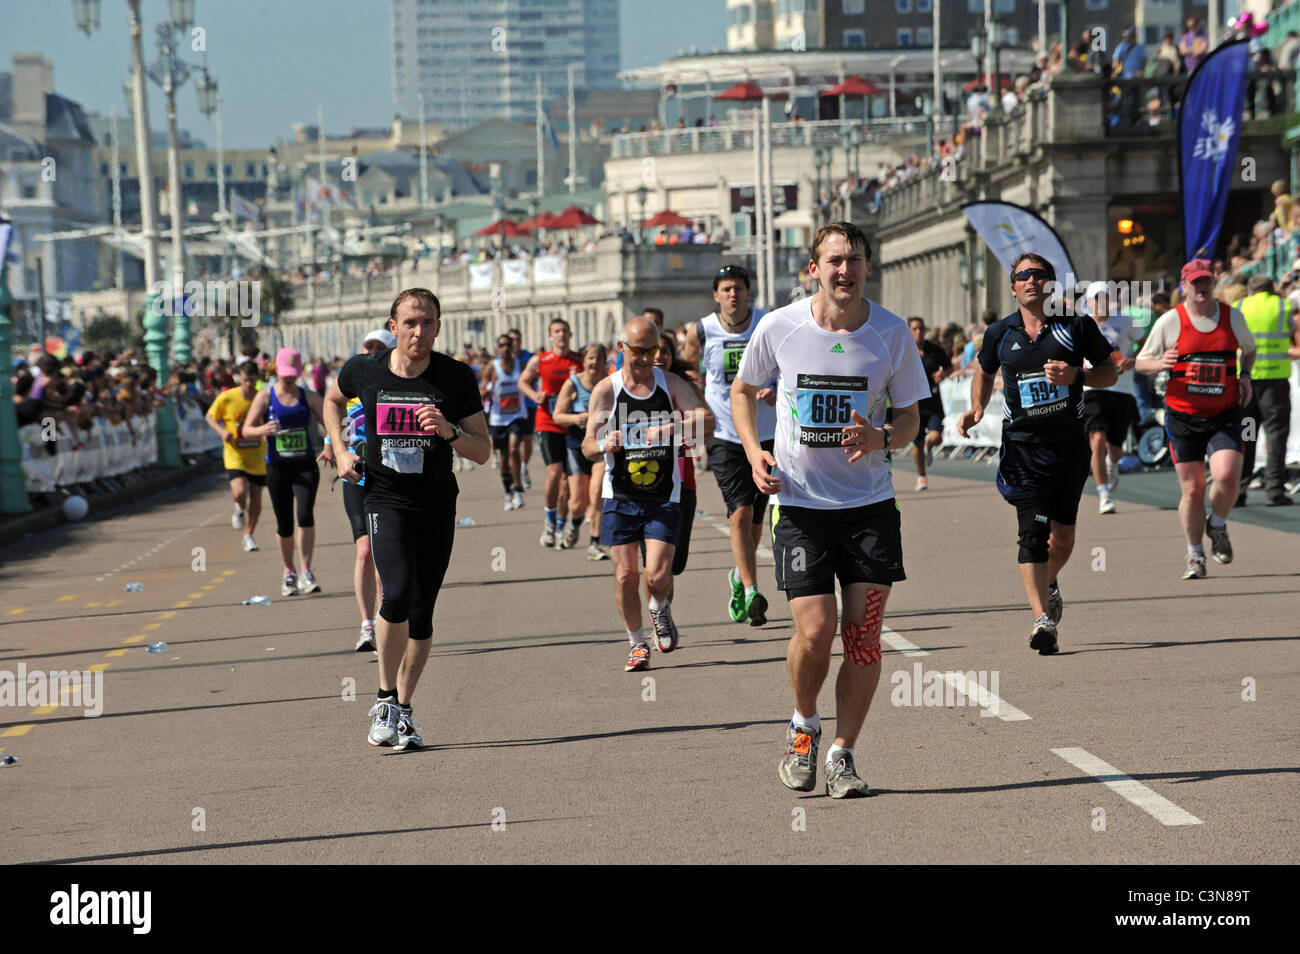 Brighton Marathon 2011 - Runners head for the finish line on Maderia drive - Stock Image